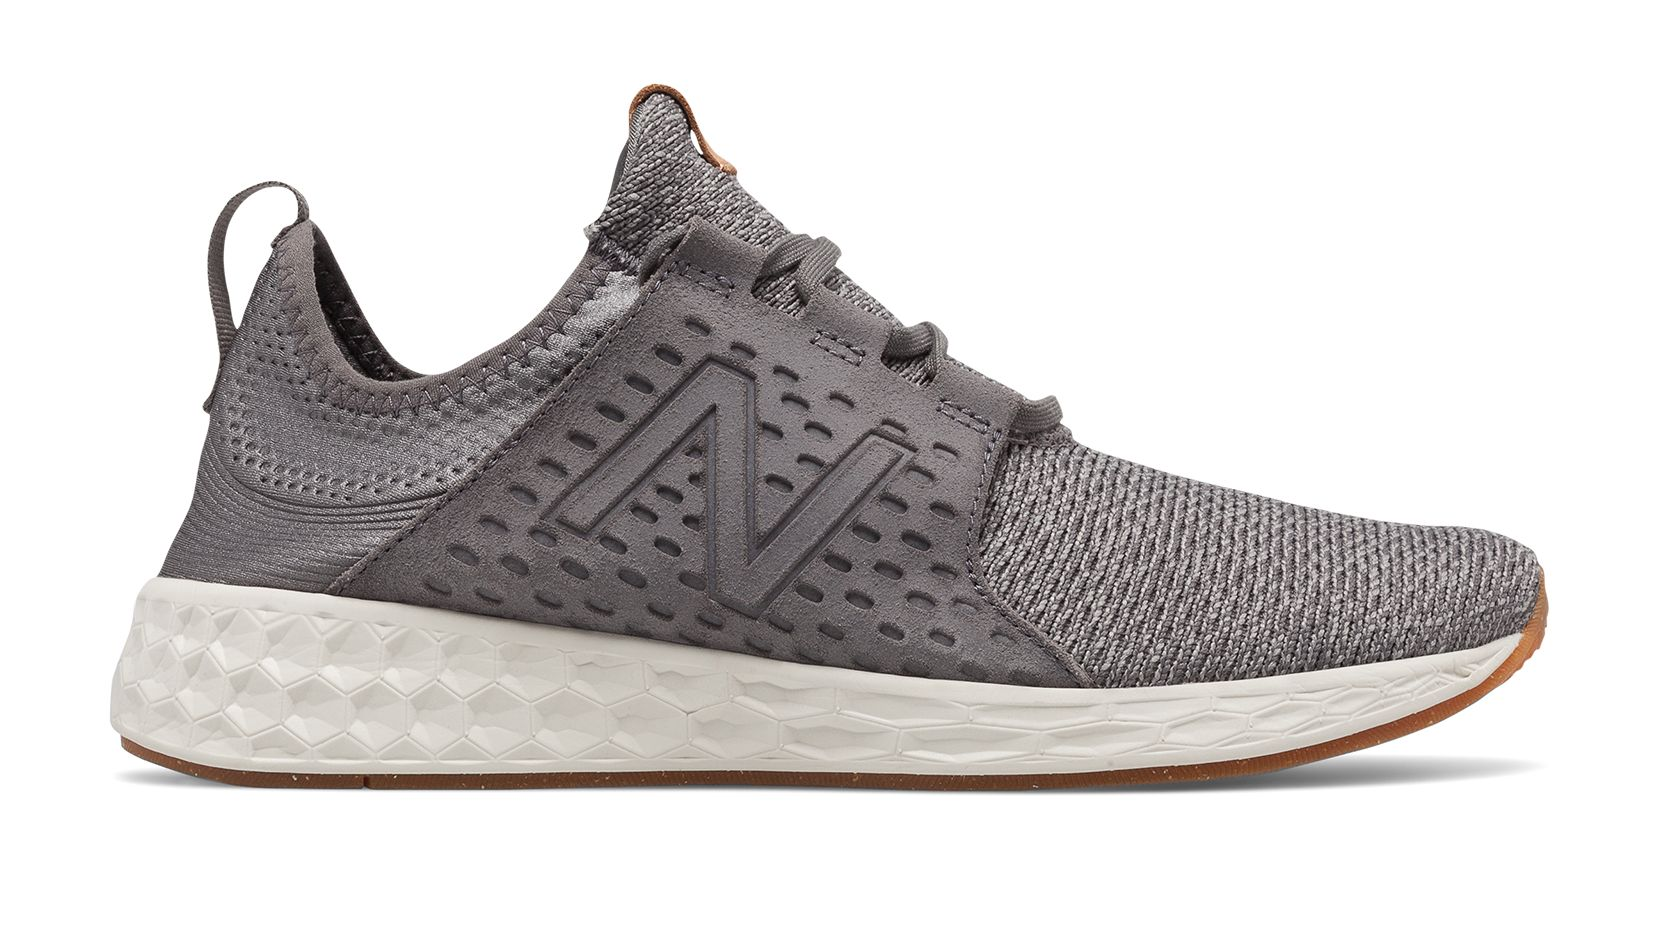 New Balance Fresh Foam Cruz running sneakers